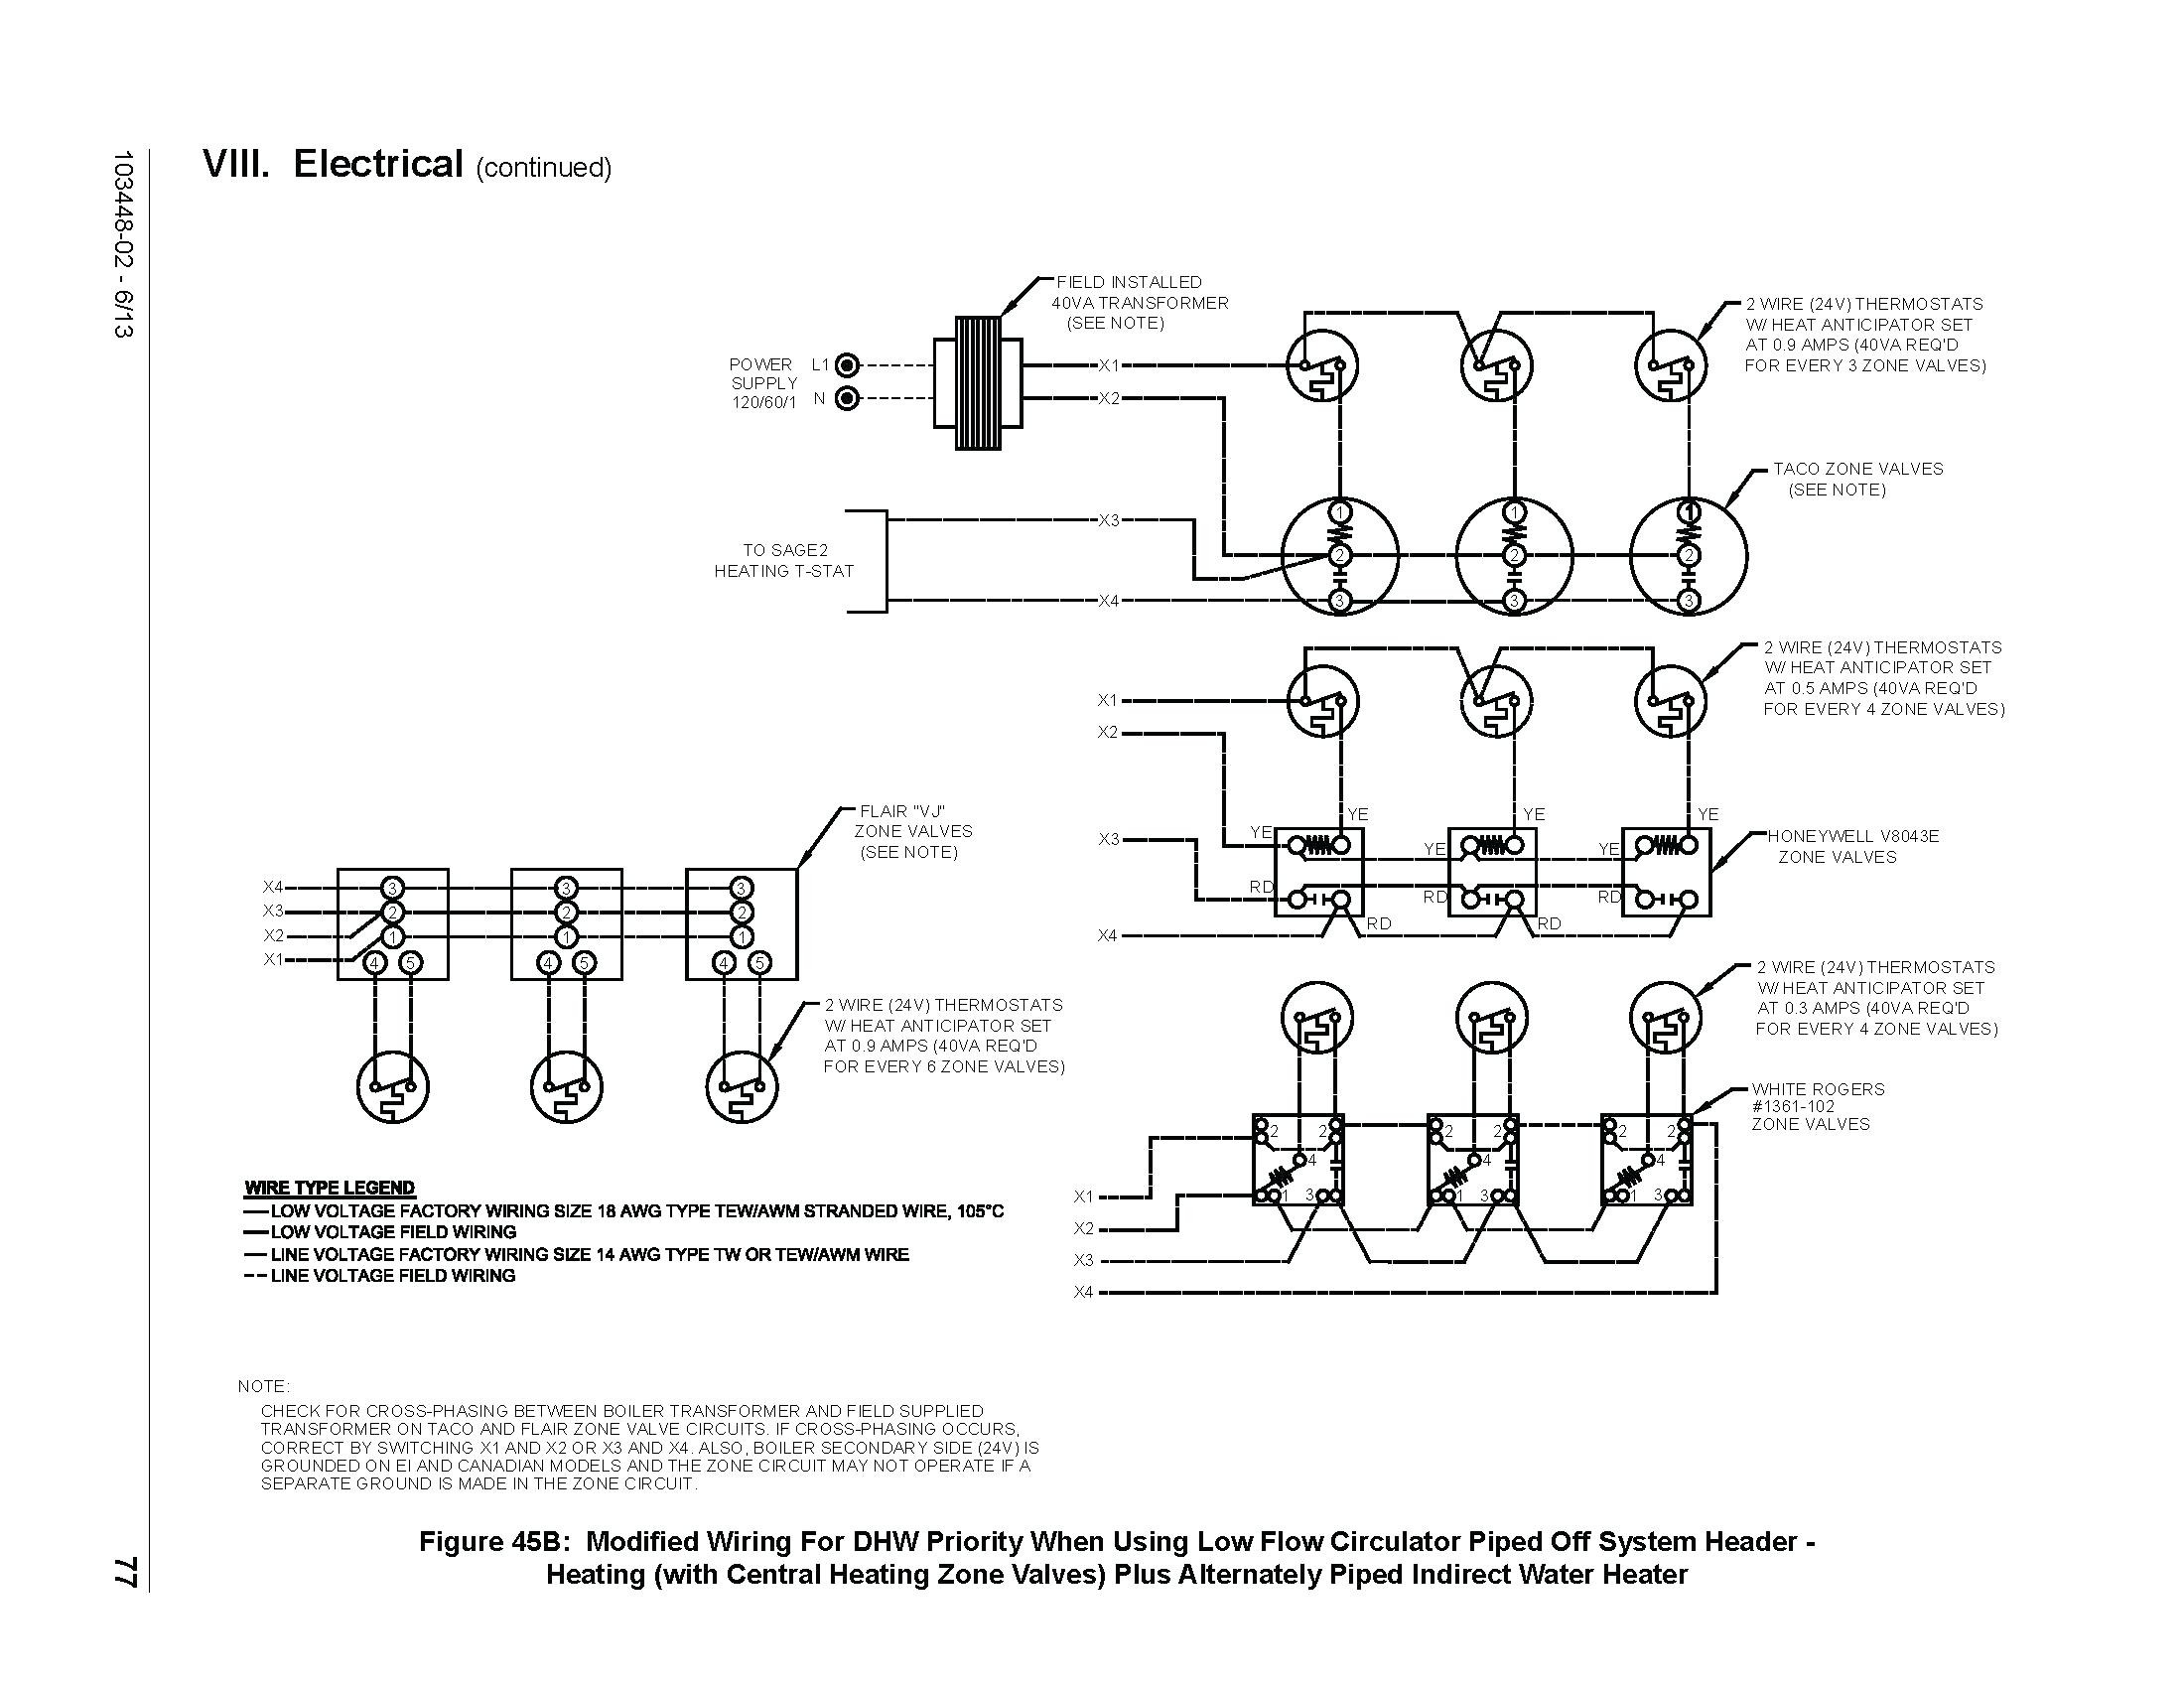 Full Size of Wireless Thermostat Wiring Diagram 2 Wire Submersible Well Pump Archived Wiring Diagram